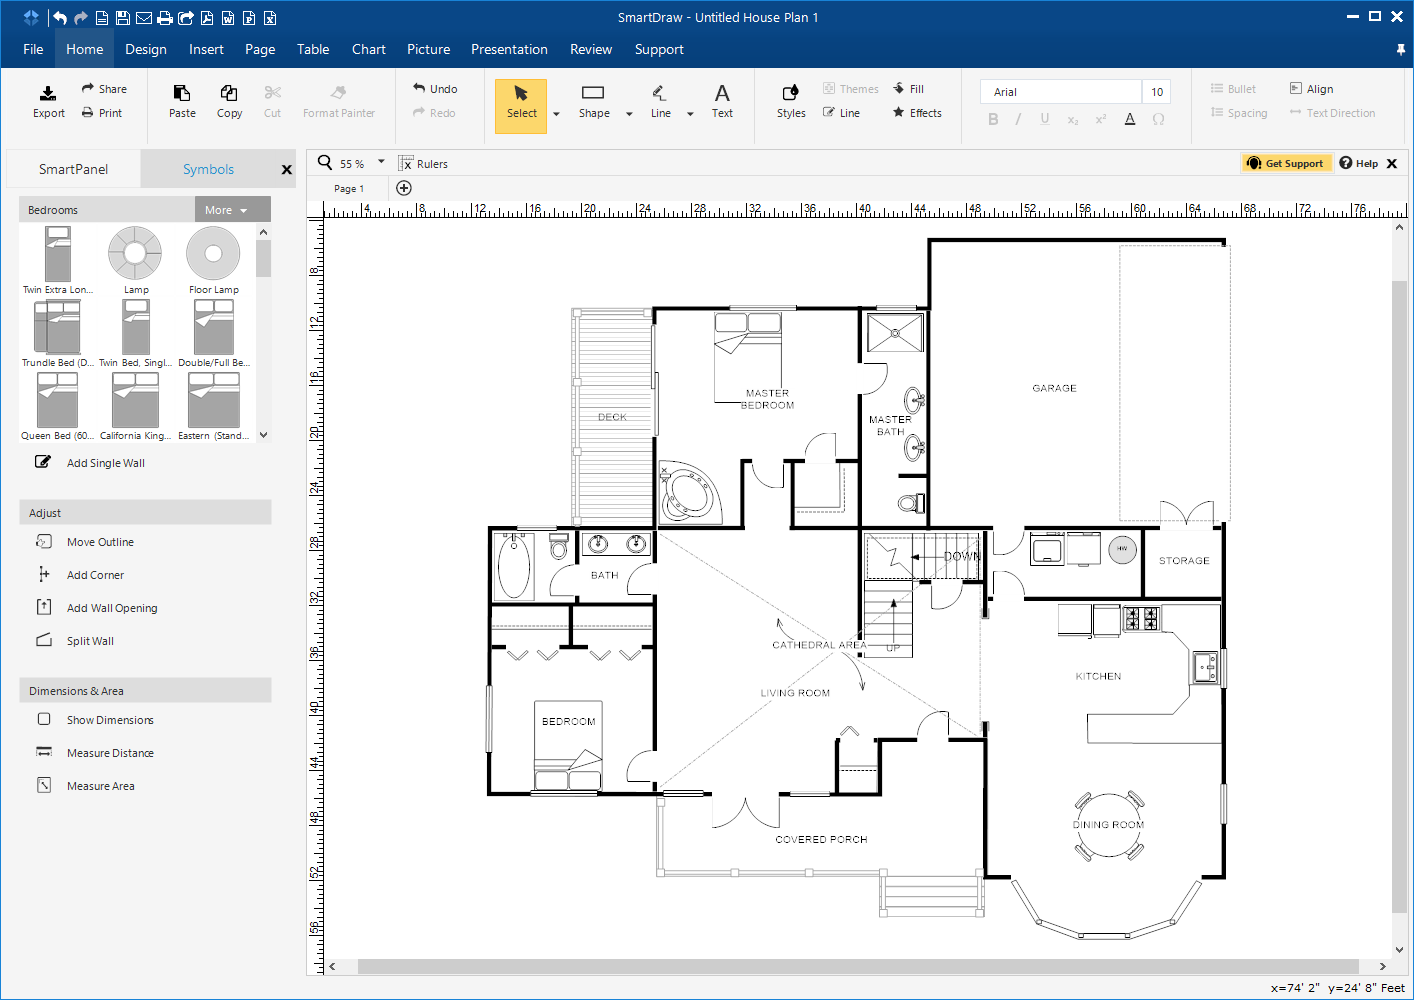 download floor plans - Free Smartdraw Download